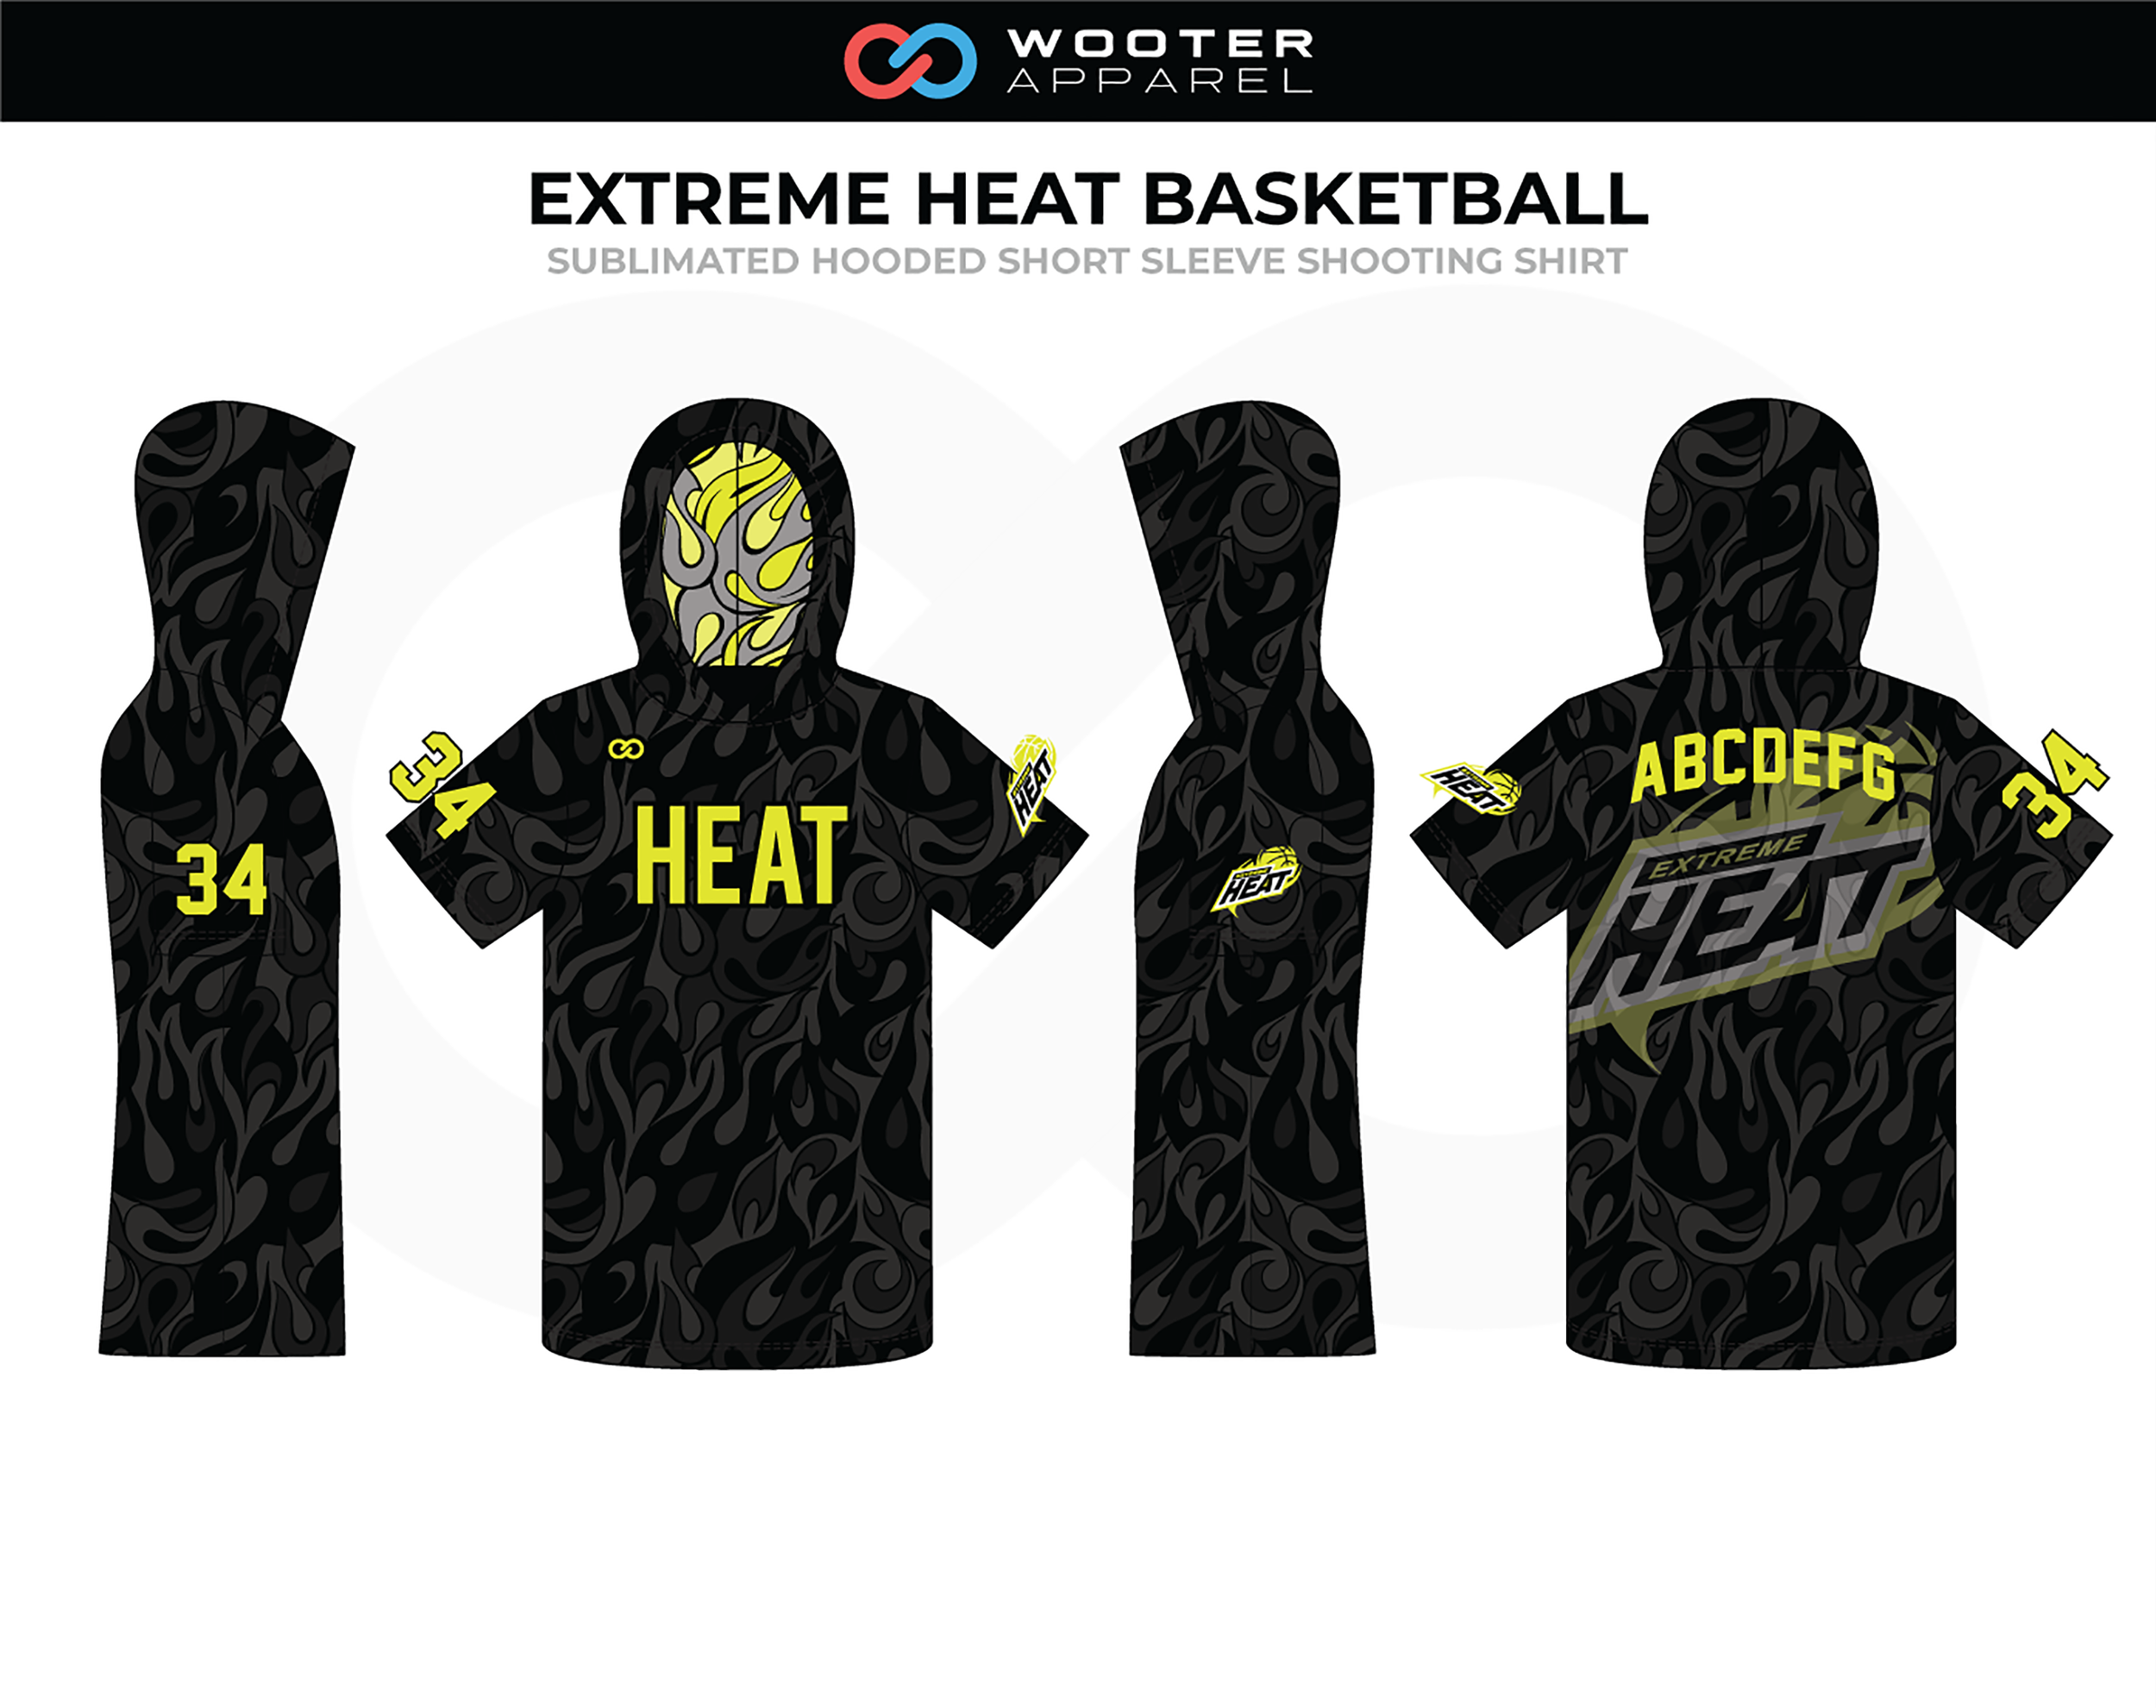 EXTREME HEAT Black Yellow Grey Basketball Hooded Short Sleeve Shooting Shirt